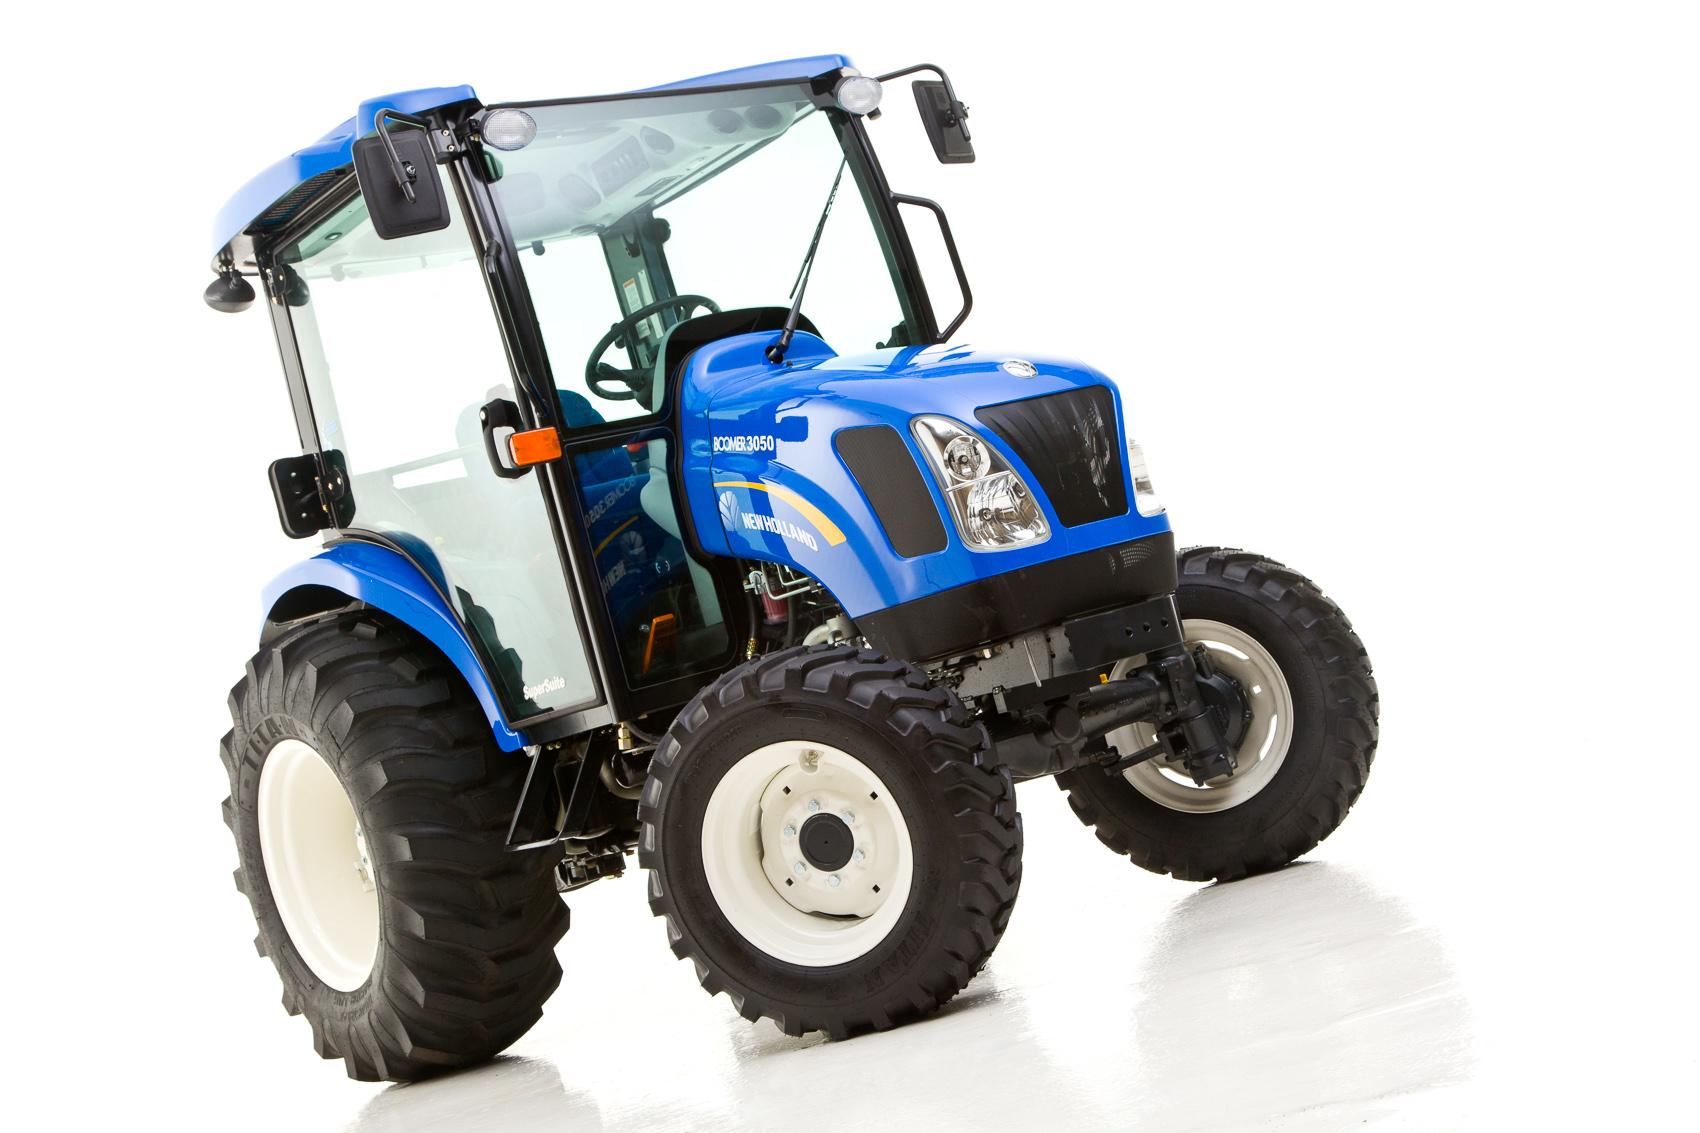 New Holland Boomer 3050 CVT Super Suite Tractor | J. Eldon Zimmerman Photography | Lancaster, PA Agriculture Photographer